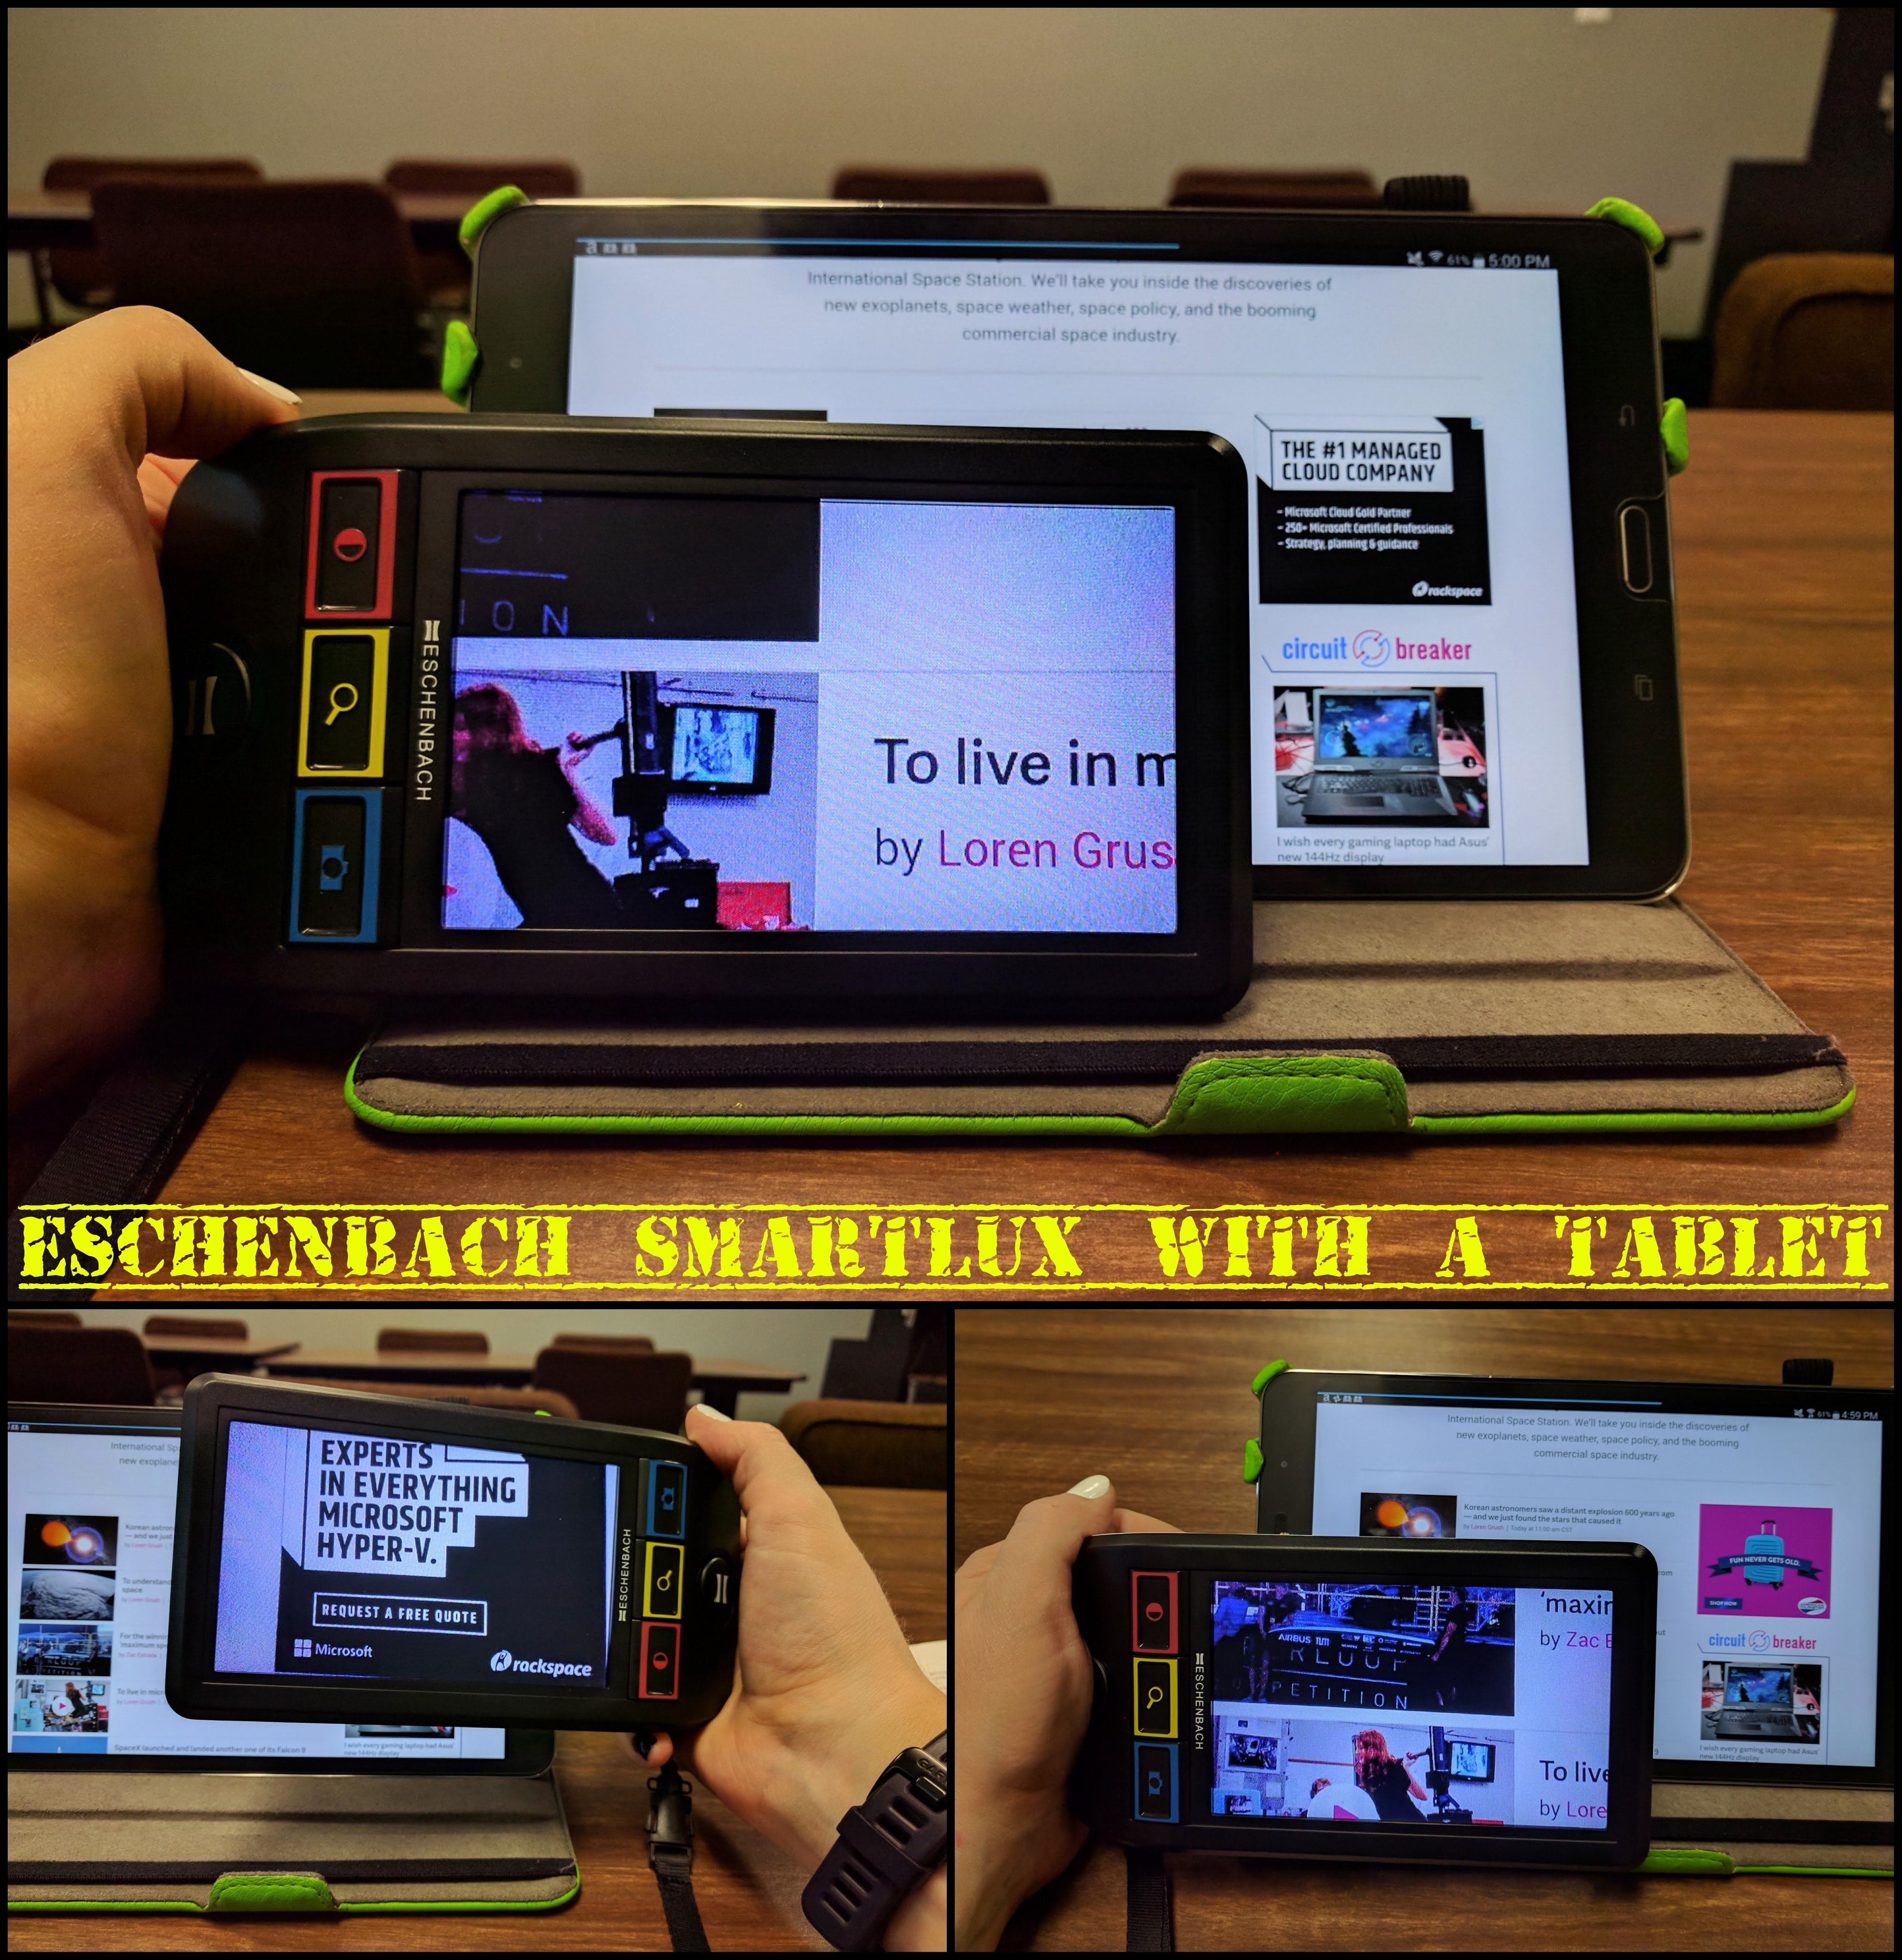 Three photos show the Smartlux being held in front of a small tablet propped up on a table with news article text and thumbnails on the screen.